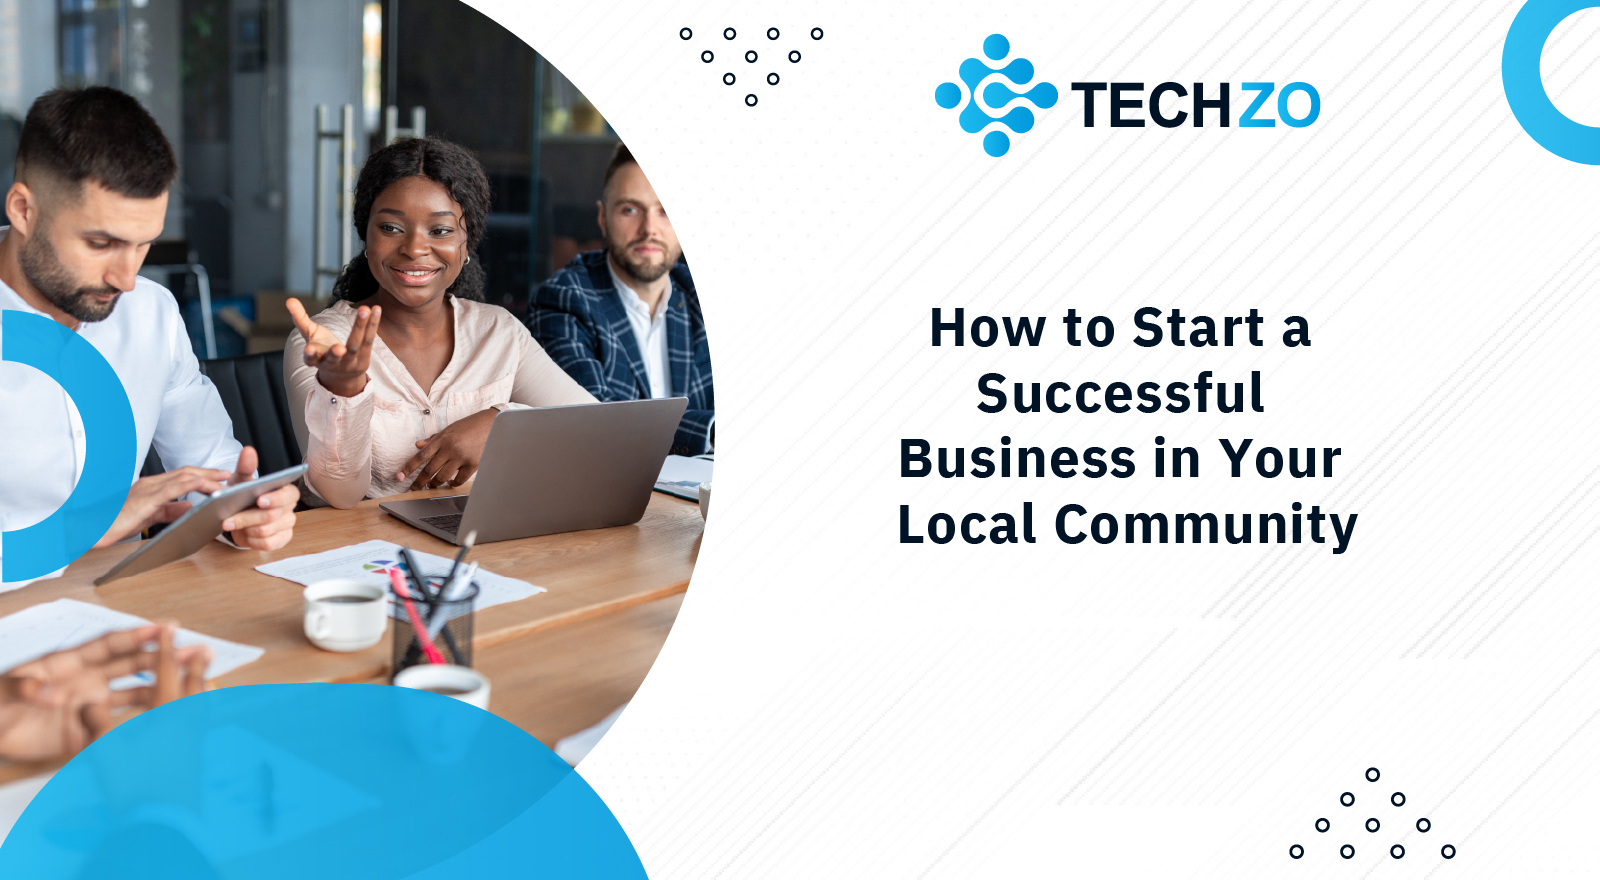 How-to-Start-a-Successful-Business-in-Your-Local-Community